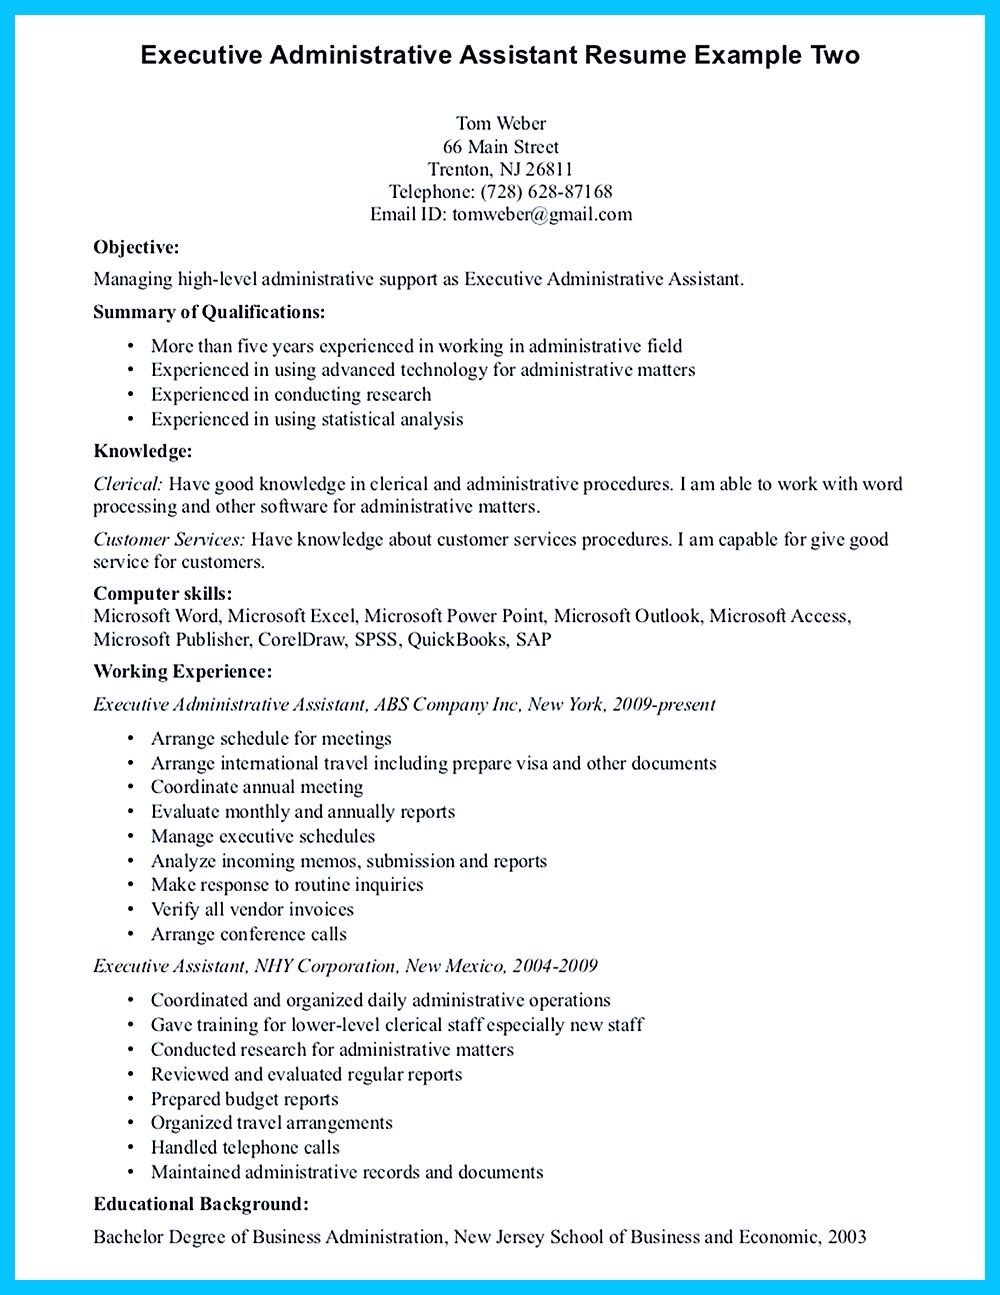 Senior Financial Analyst Resume In Writing Entry Level Administrative Assistant Resume You Need